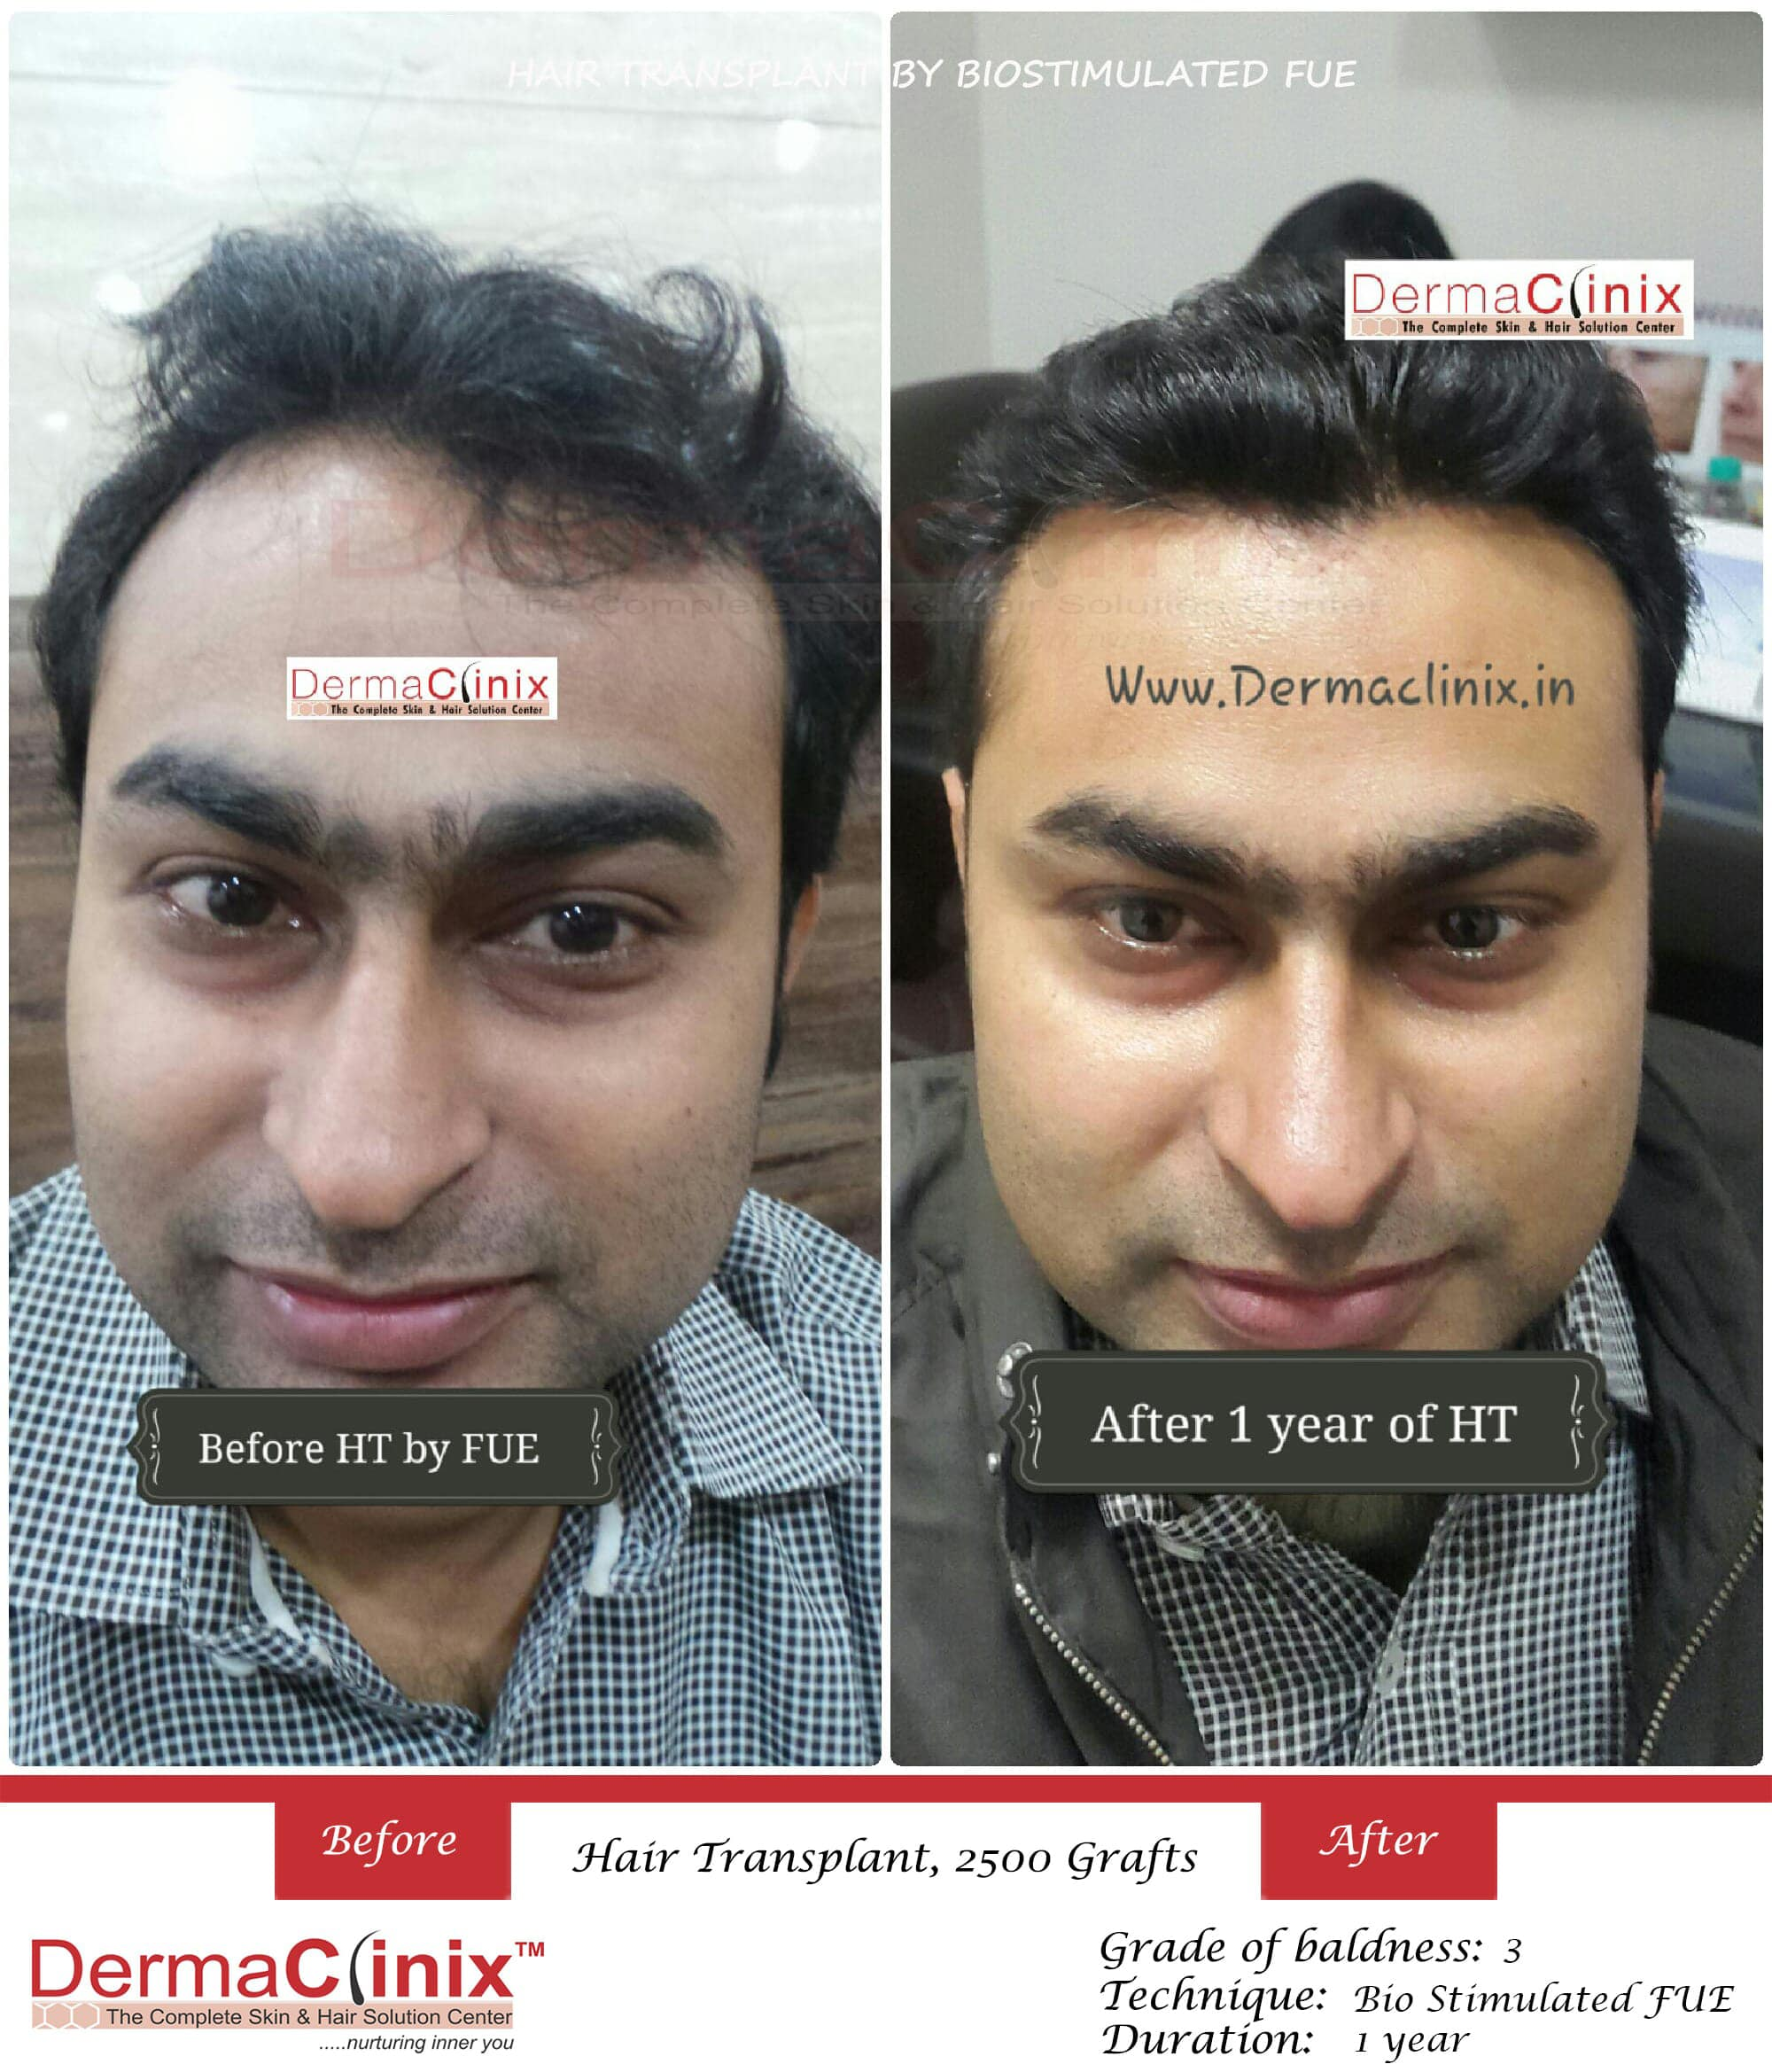 Hair Transplant Surgery & PRP Results,Before and After Photos